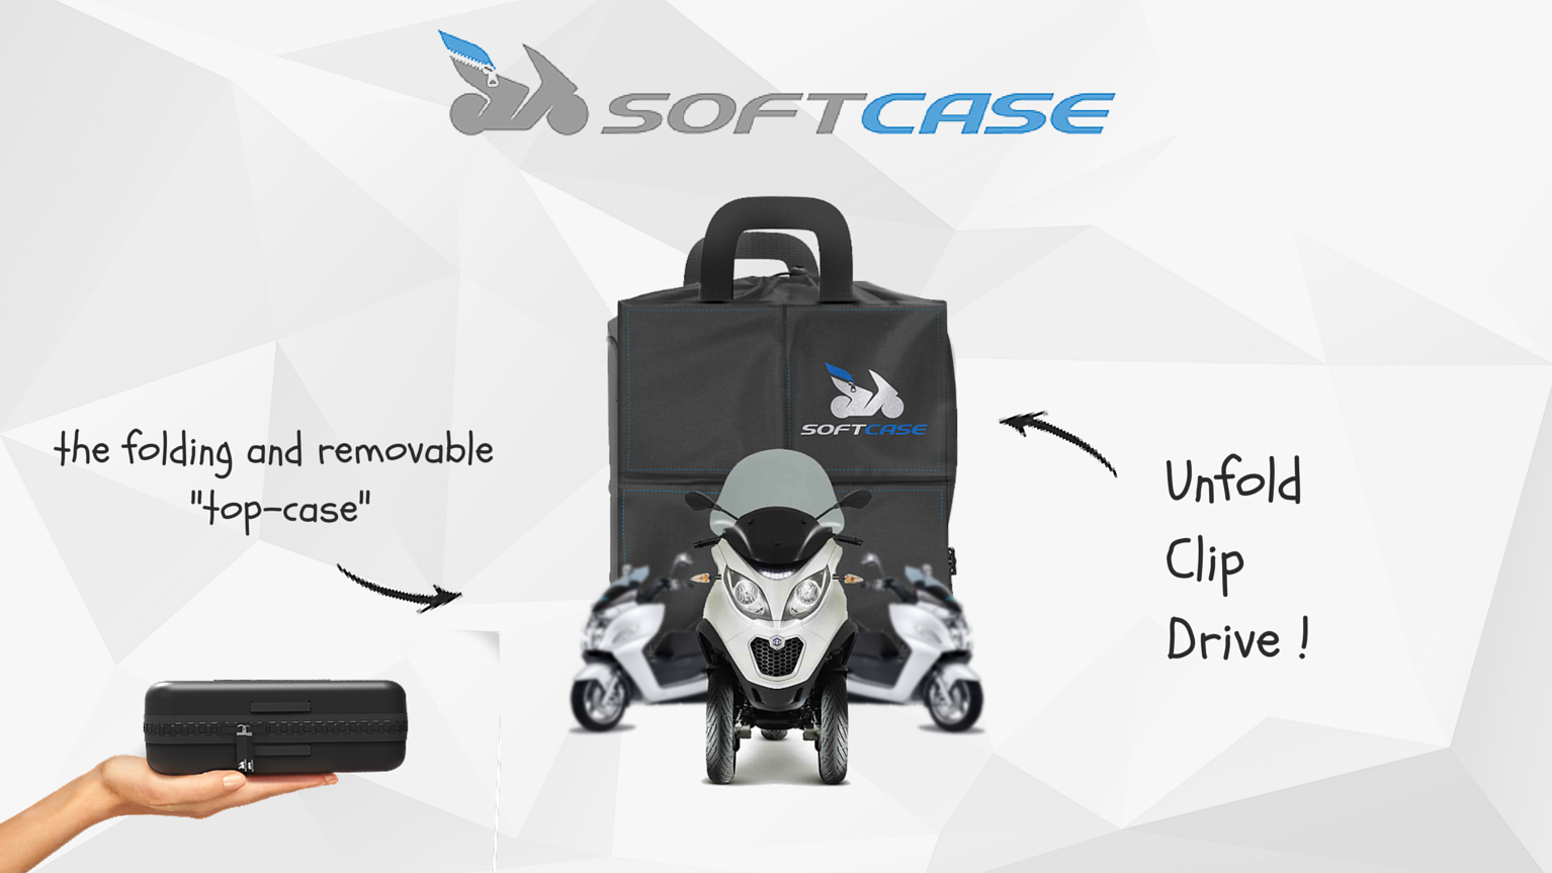 The top case that will change your way to travel by scooter. Unfold, clip, drive ! Everything is simpler with Softcase.